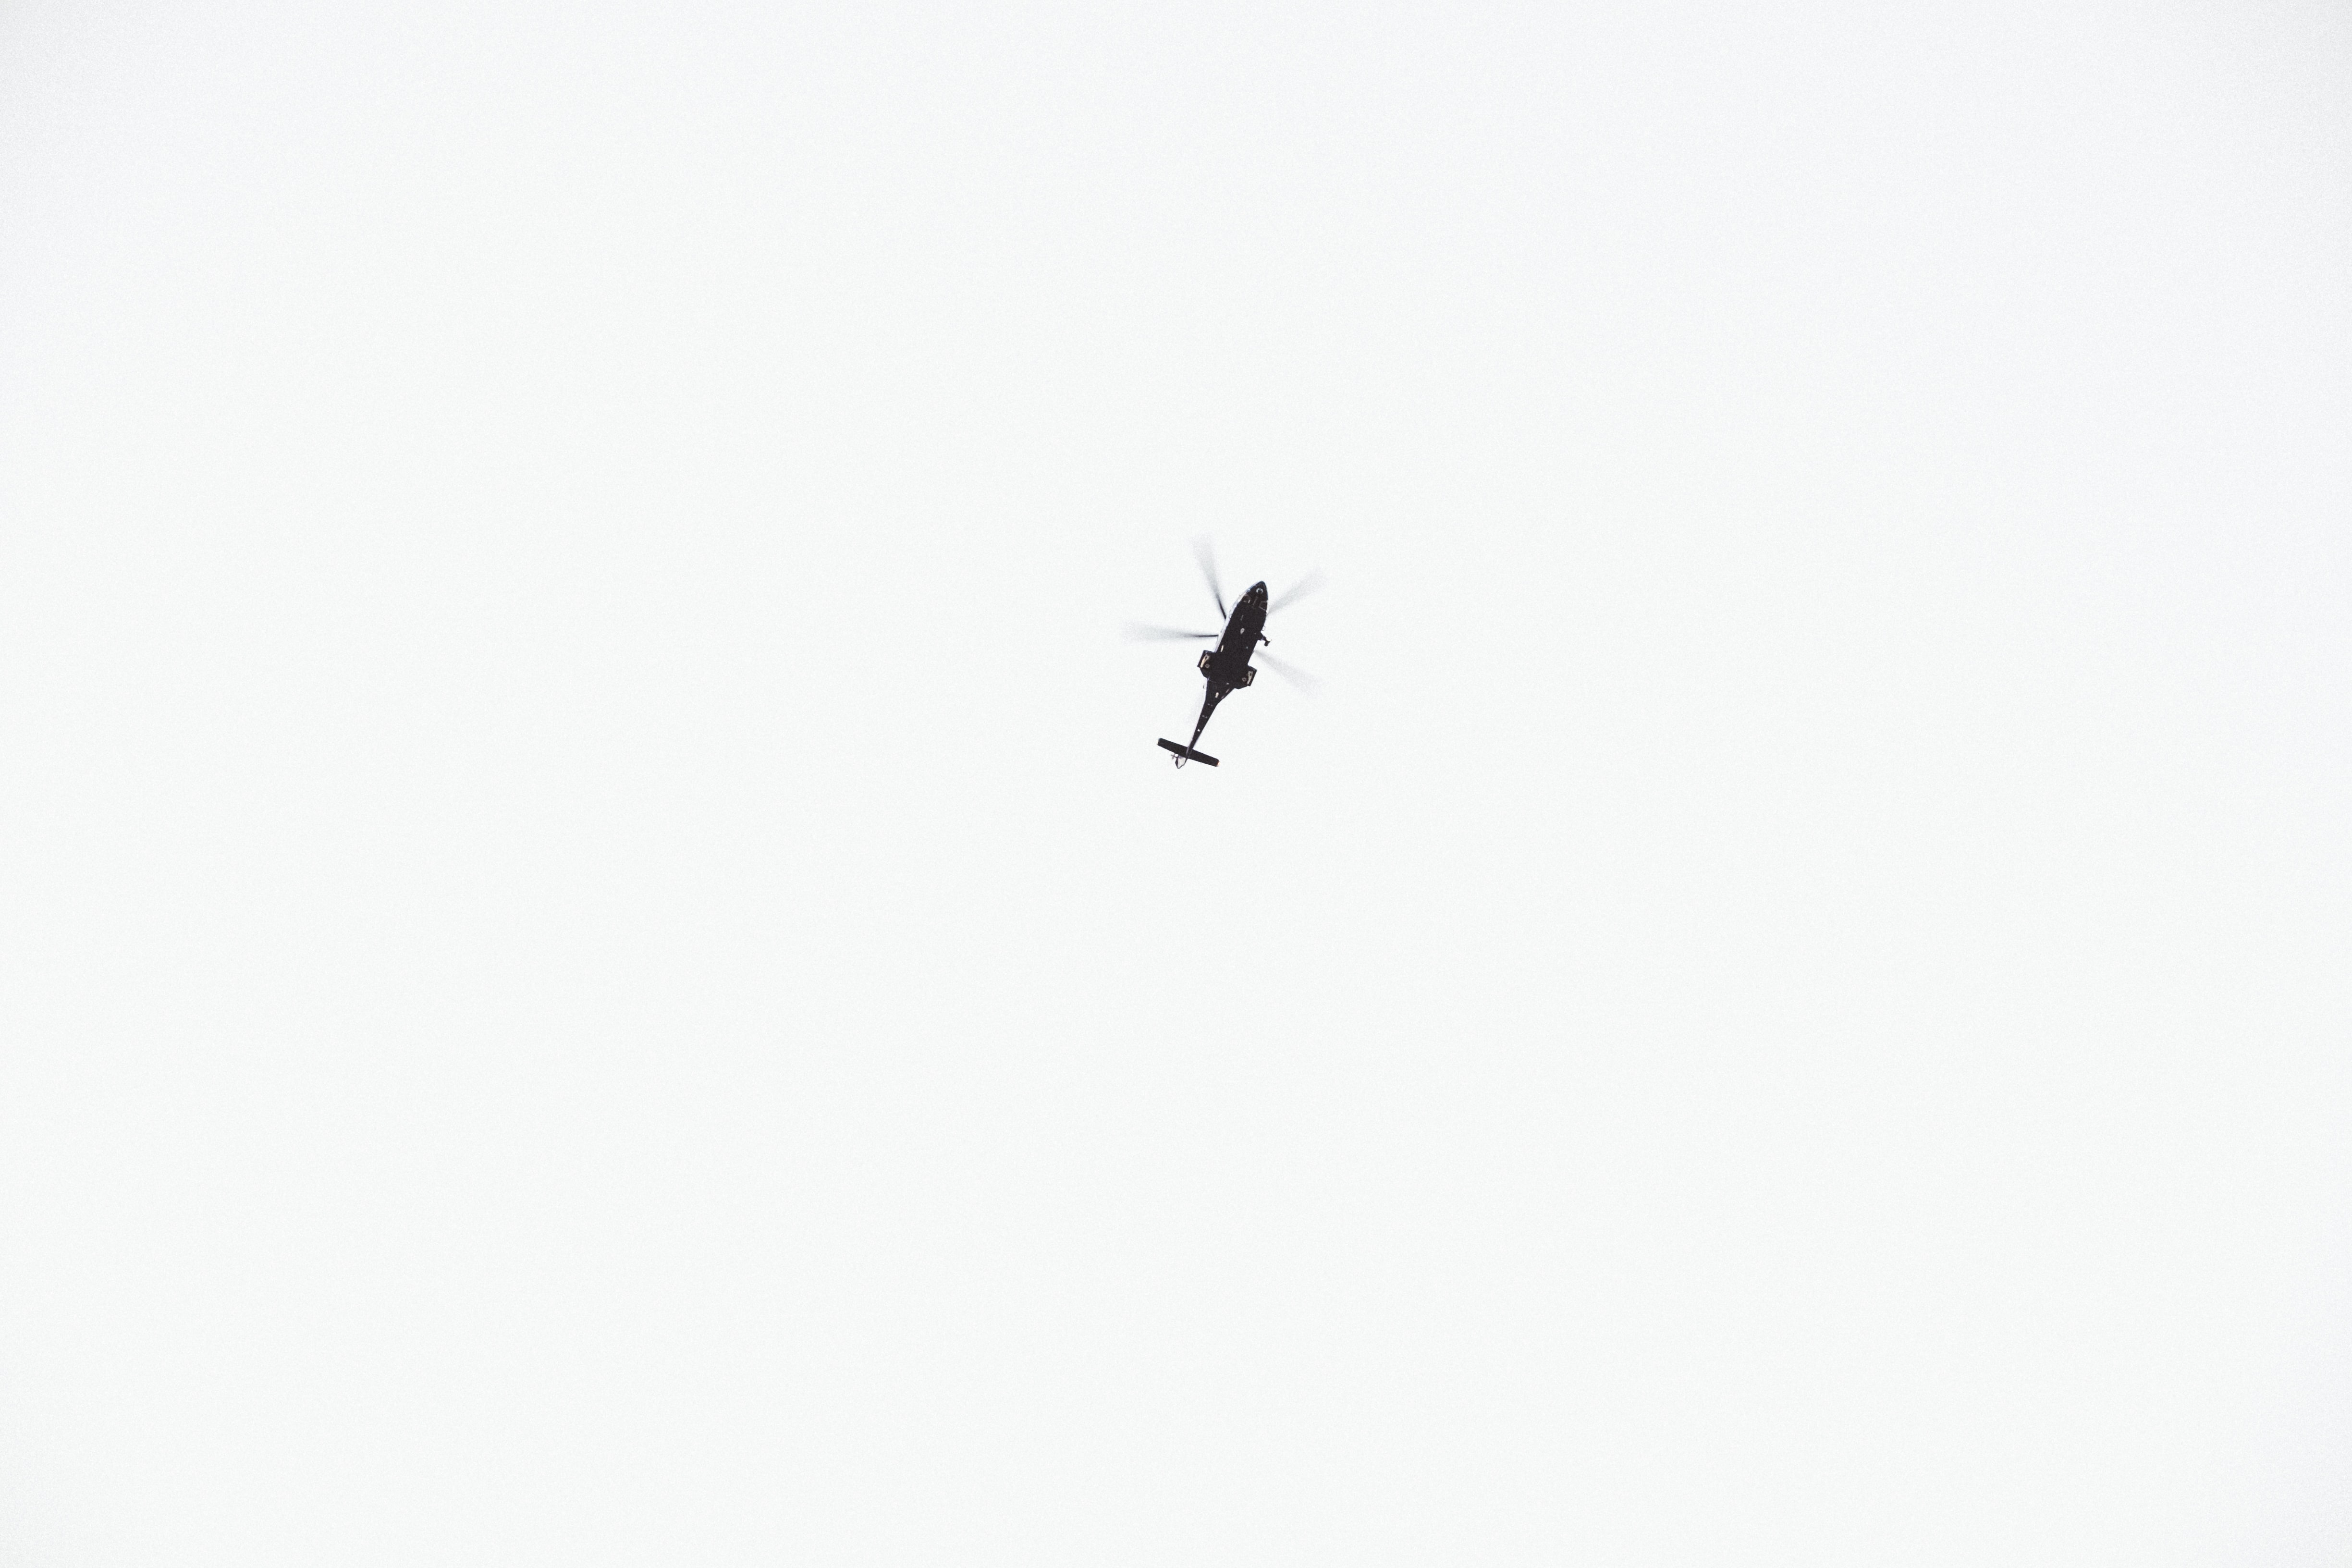 black helicopter on sky during daytime